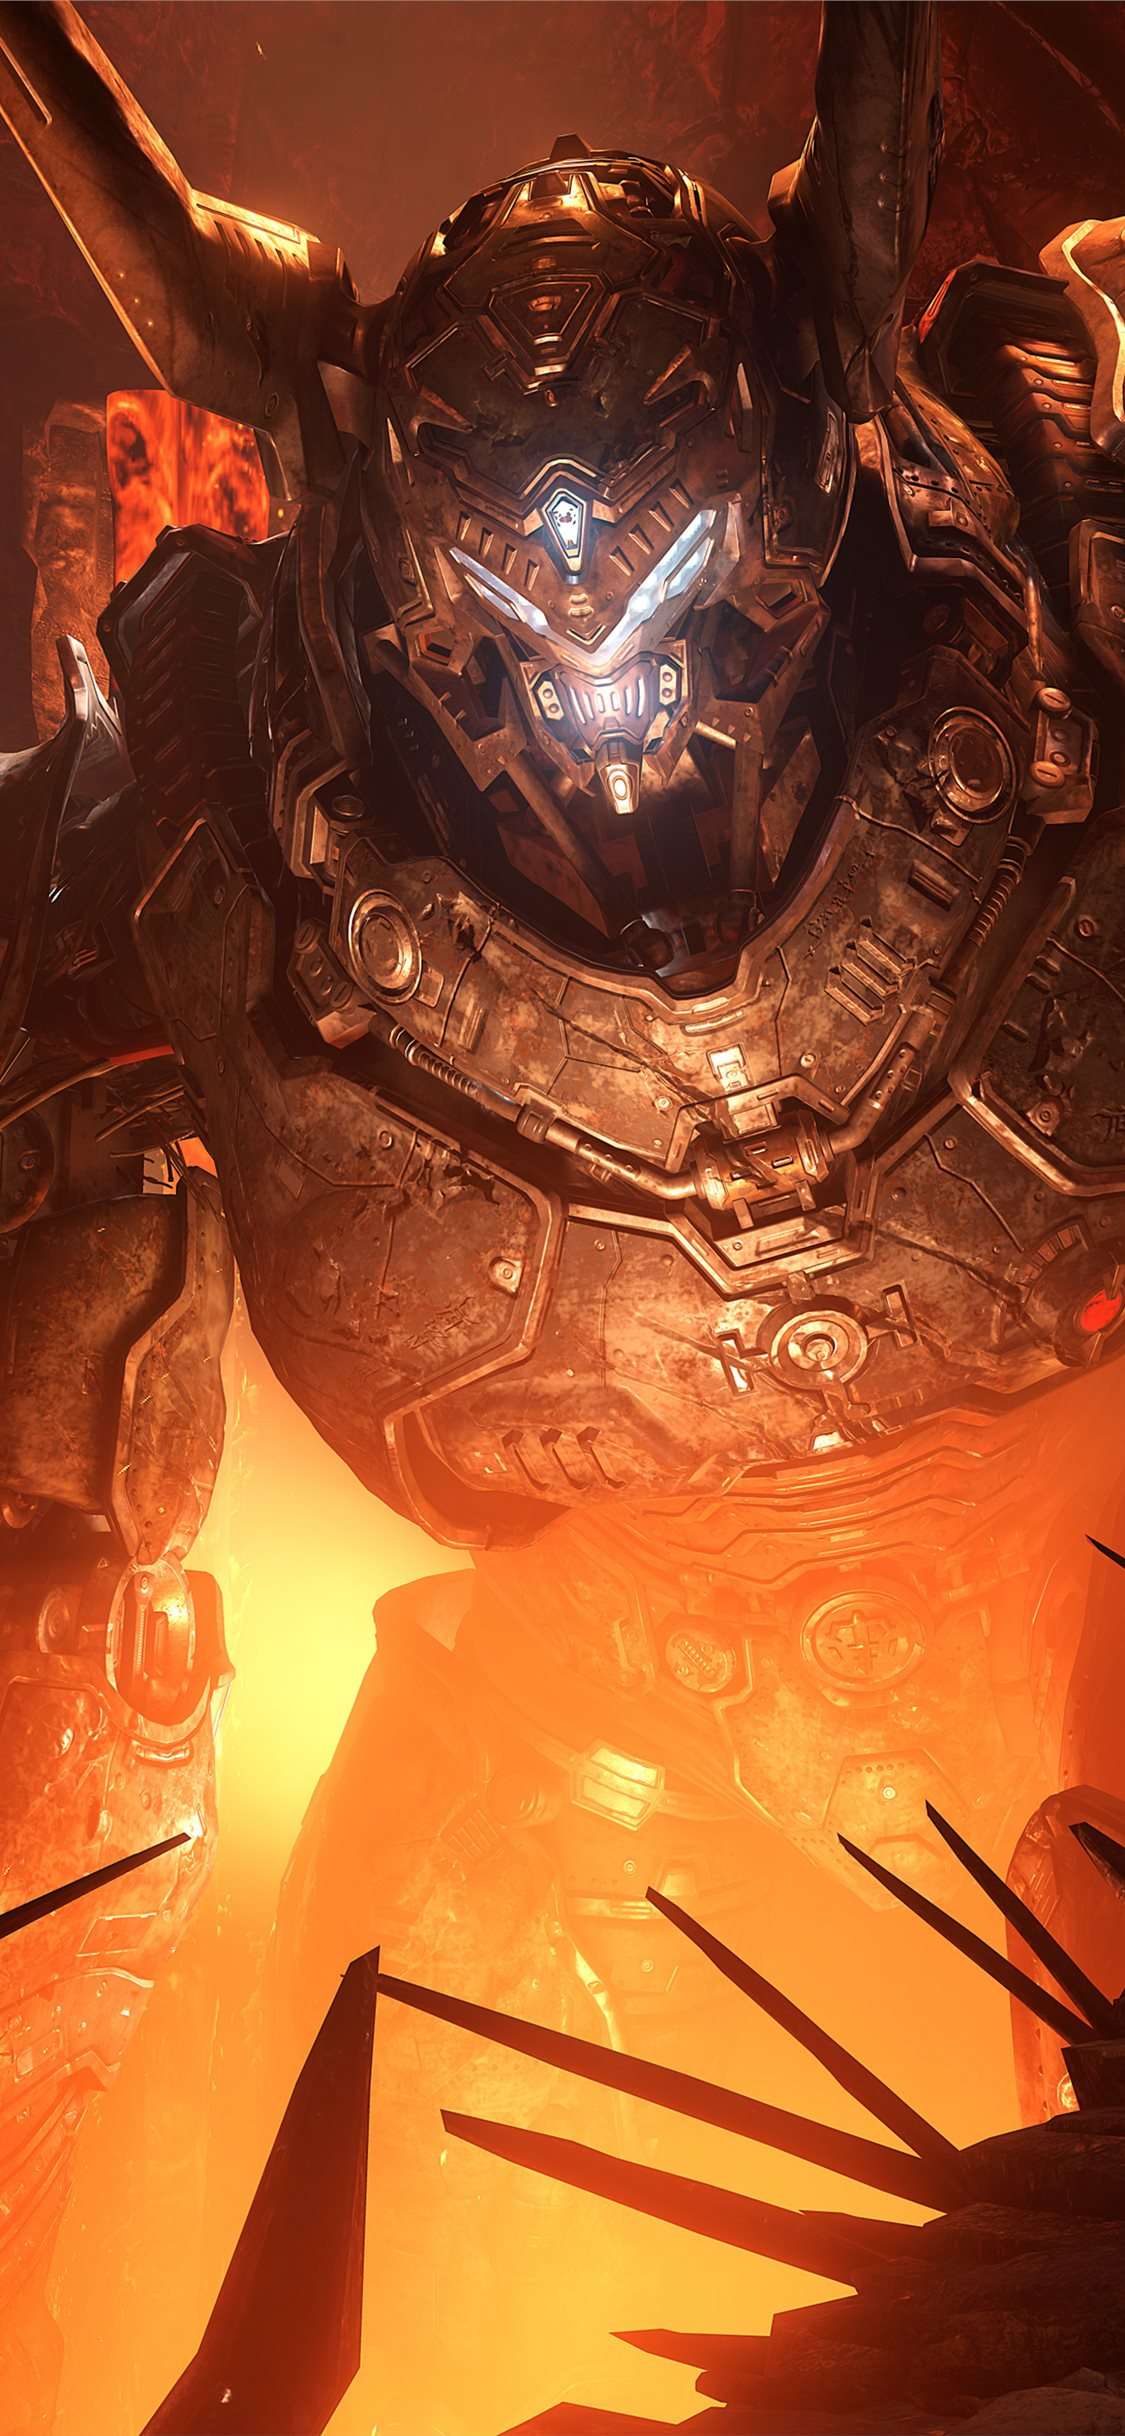 Doom Eternal 2020 5k Iphone X Wallpapers Free Download